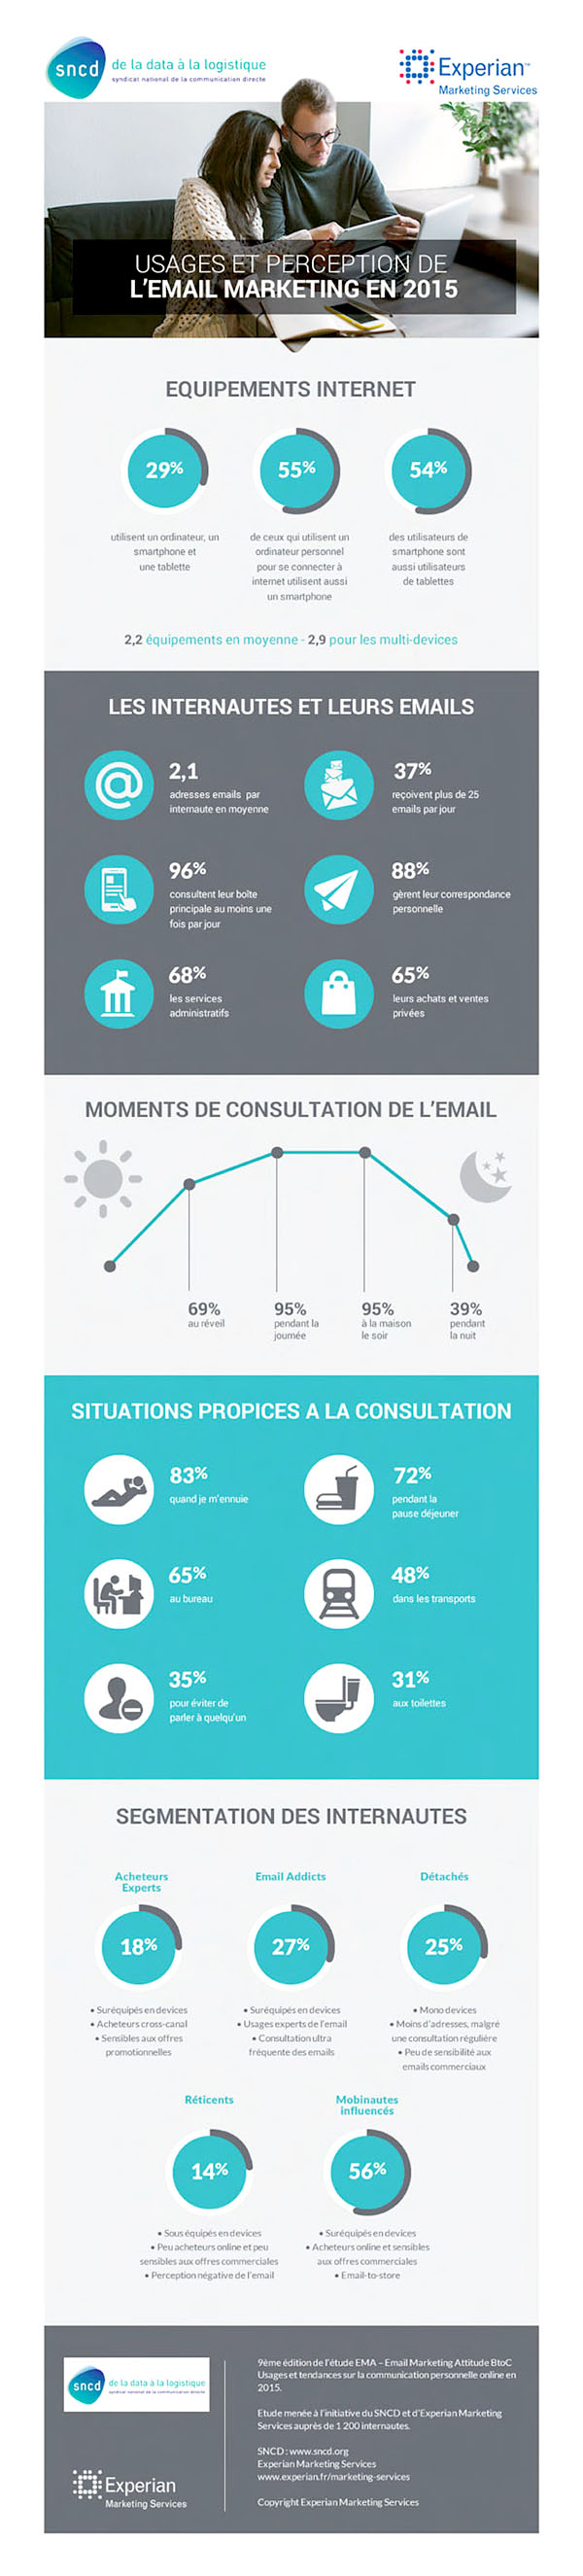 infographie-emailing-btoc SNCD et Experian